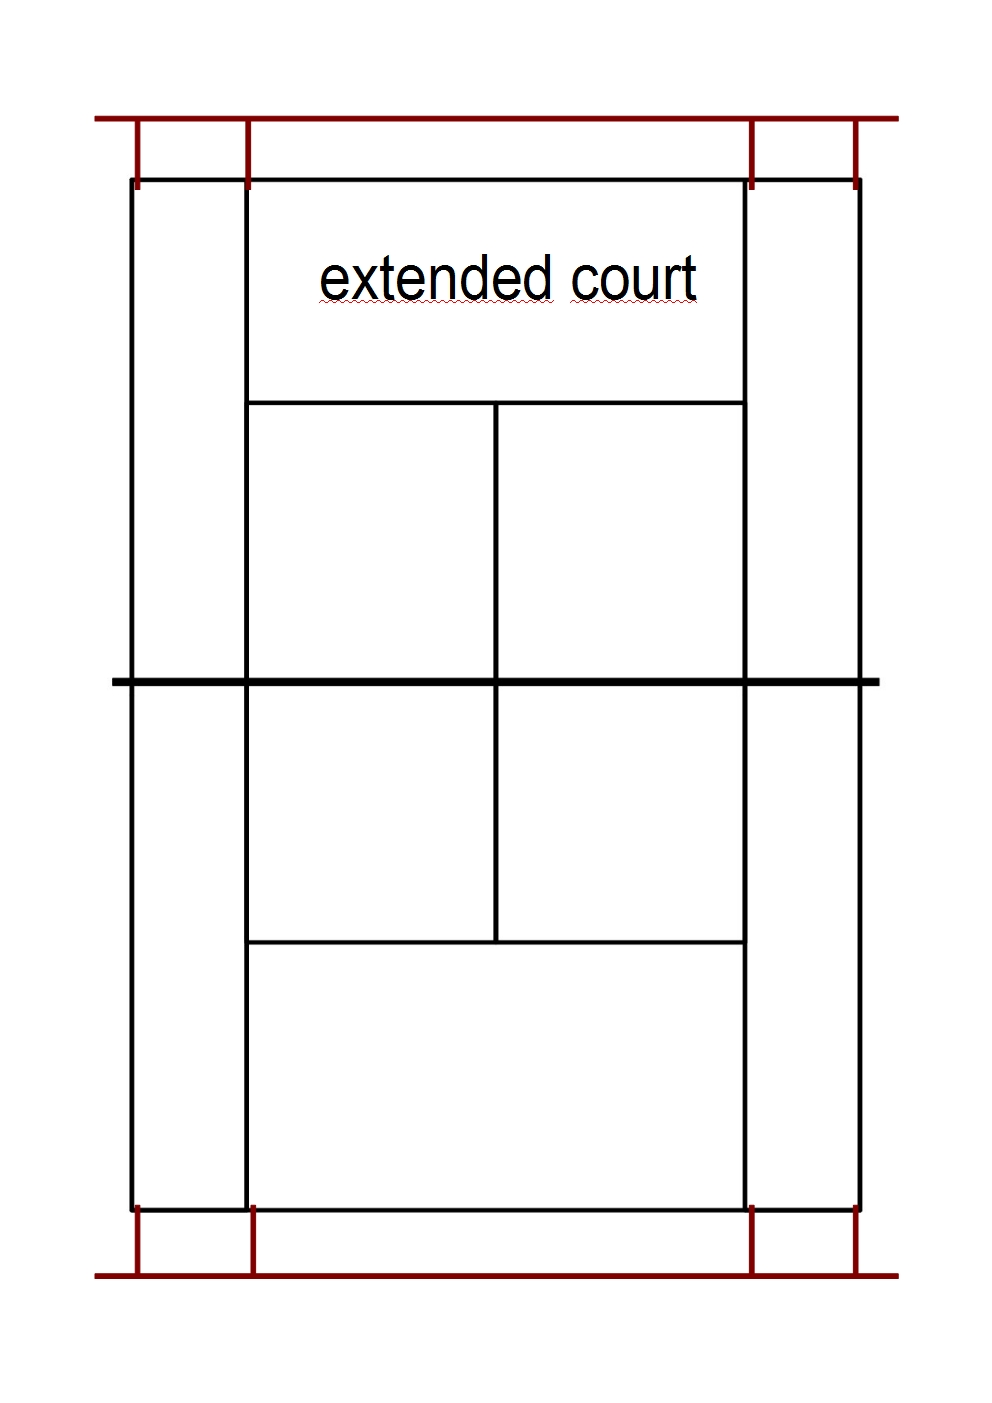 extended_court